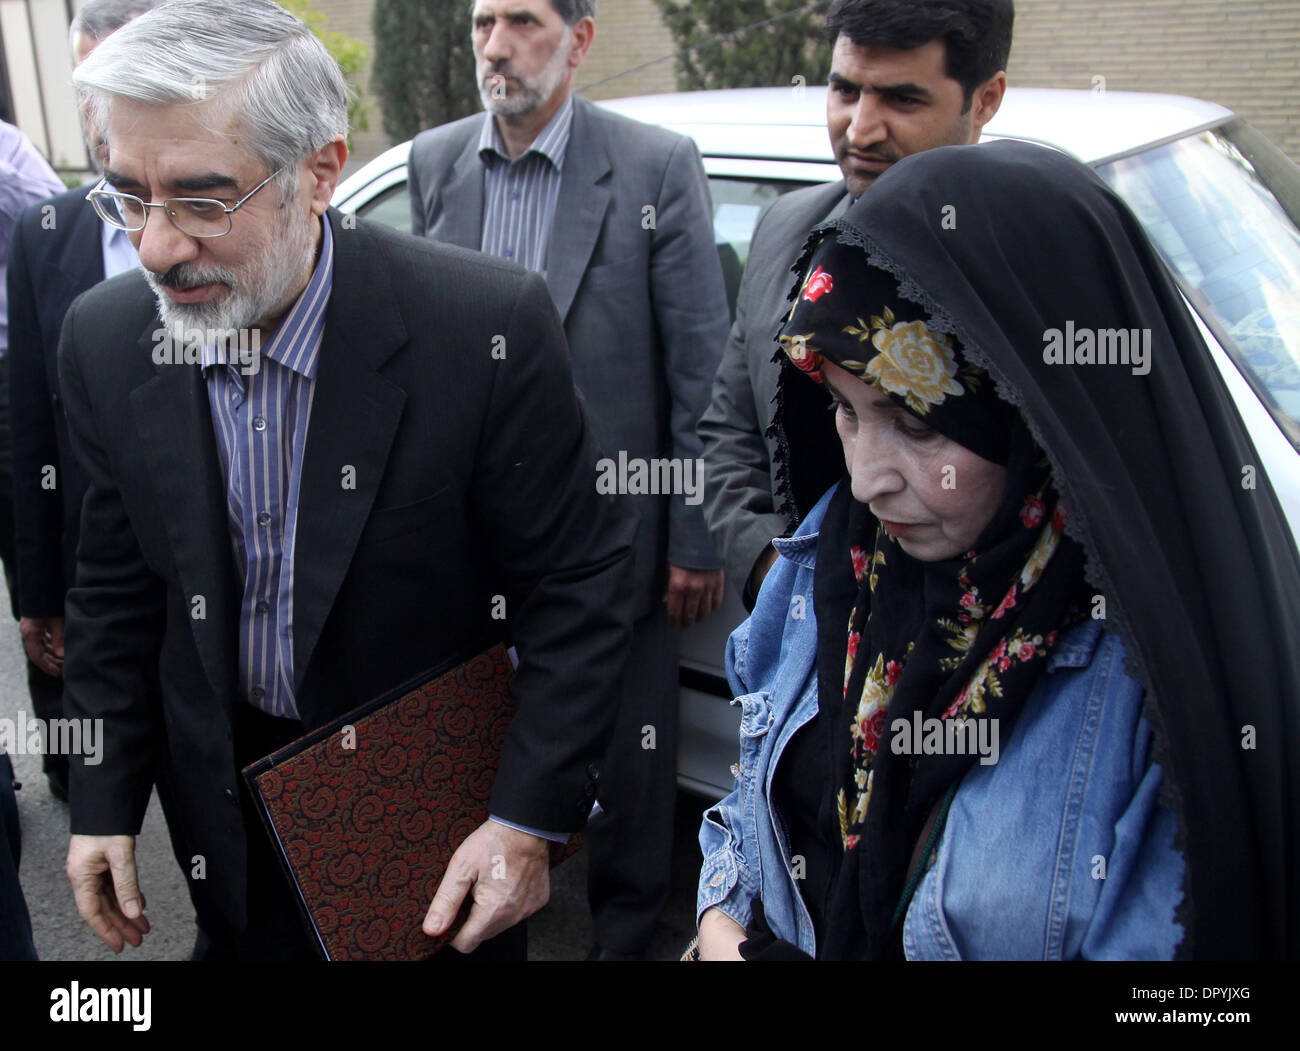 Apr 19, 2009 - Tehran, Iran - Former Iranian prime minister and candidate for the June 12 presidential election, Mir HOSSEIN MOUSAVI, 67, and his wife ZAHRA RAHNAVARD on their way to a meeting with artists and cultural people to talk about his programs about Iran's art and culture. Mousavi visited artists, directors, actors, writers, poets and other cultural people. He has chosen a - Stock Image